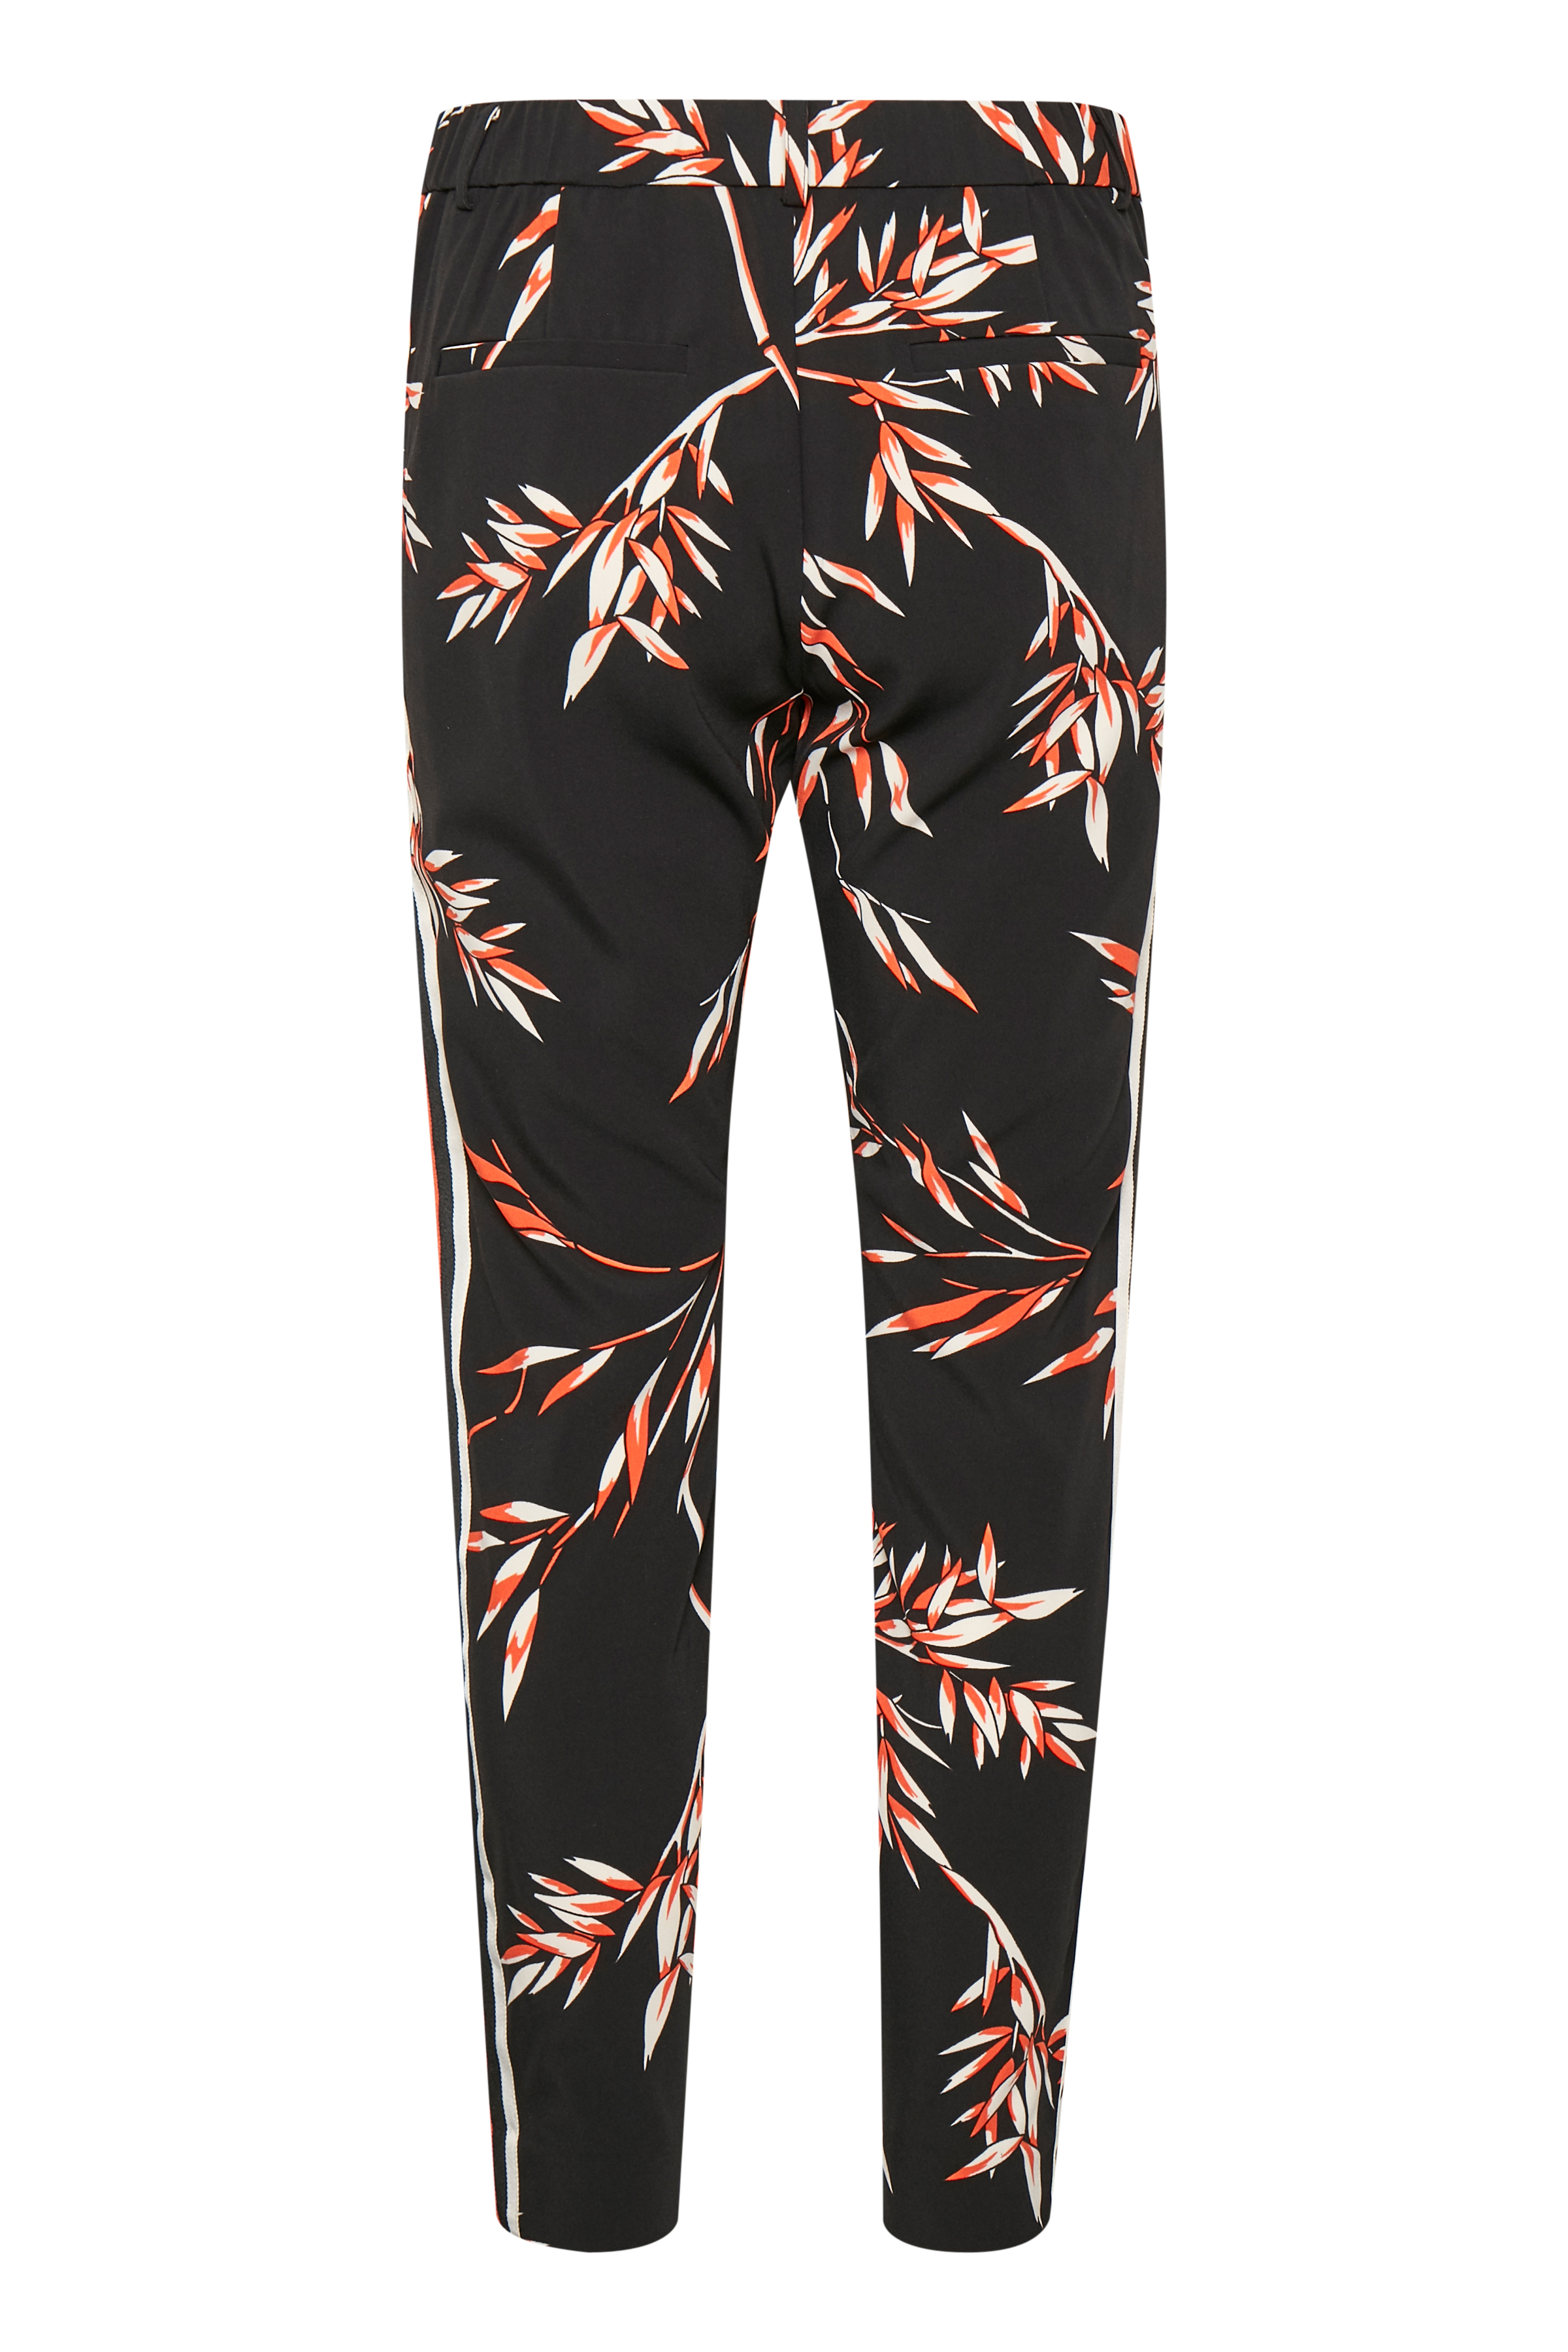 Bamboo Flower Pants Suiting – Køb Bamboo Flower Pants Suiting fra str. 32-42 her